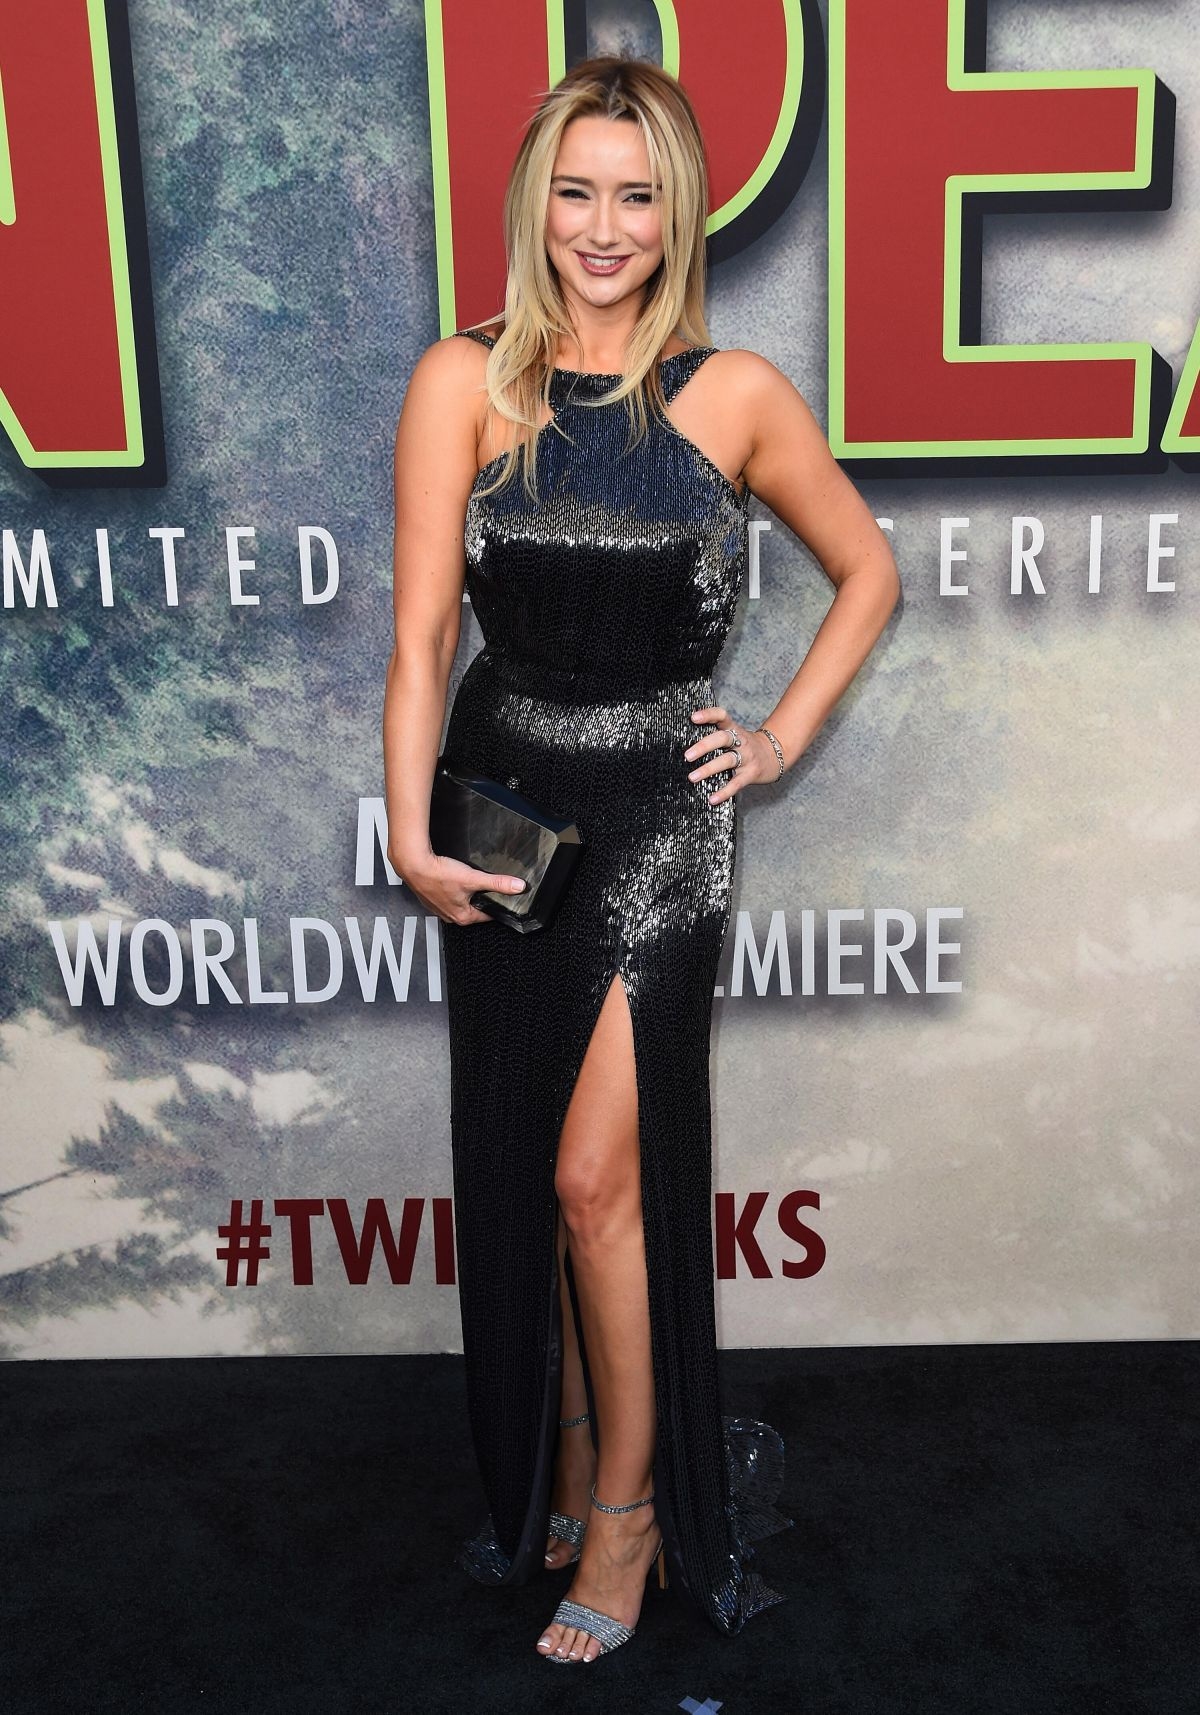 AMY SHIELS at Twin Peaks Premiere in Los Angeles 05/19/2017